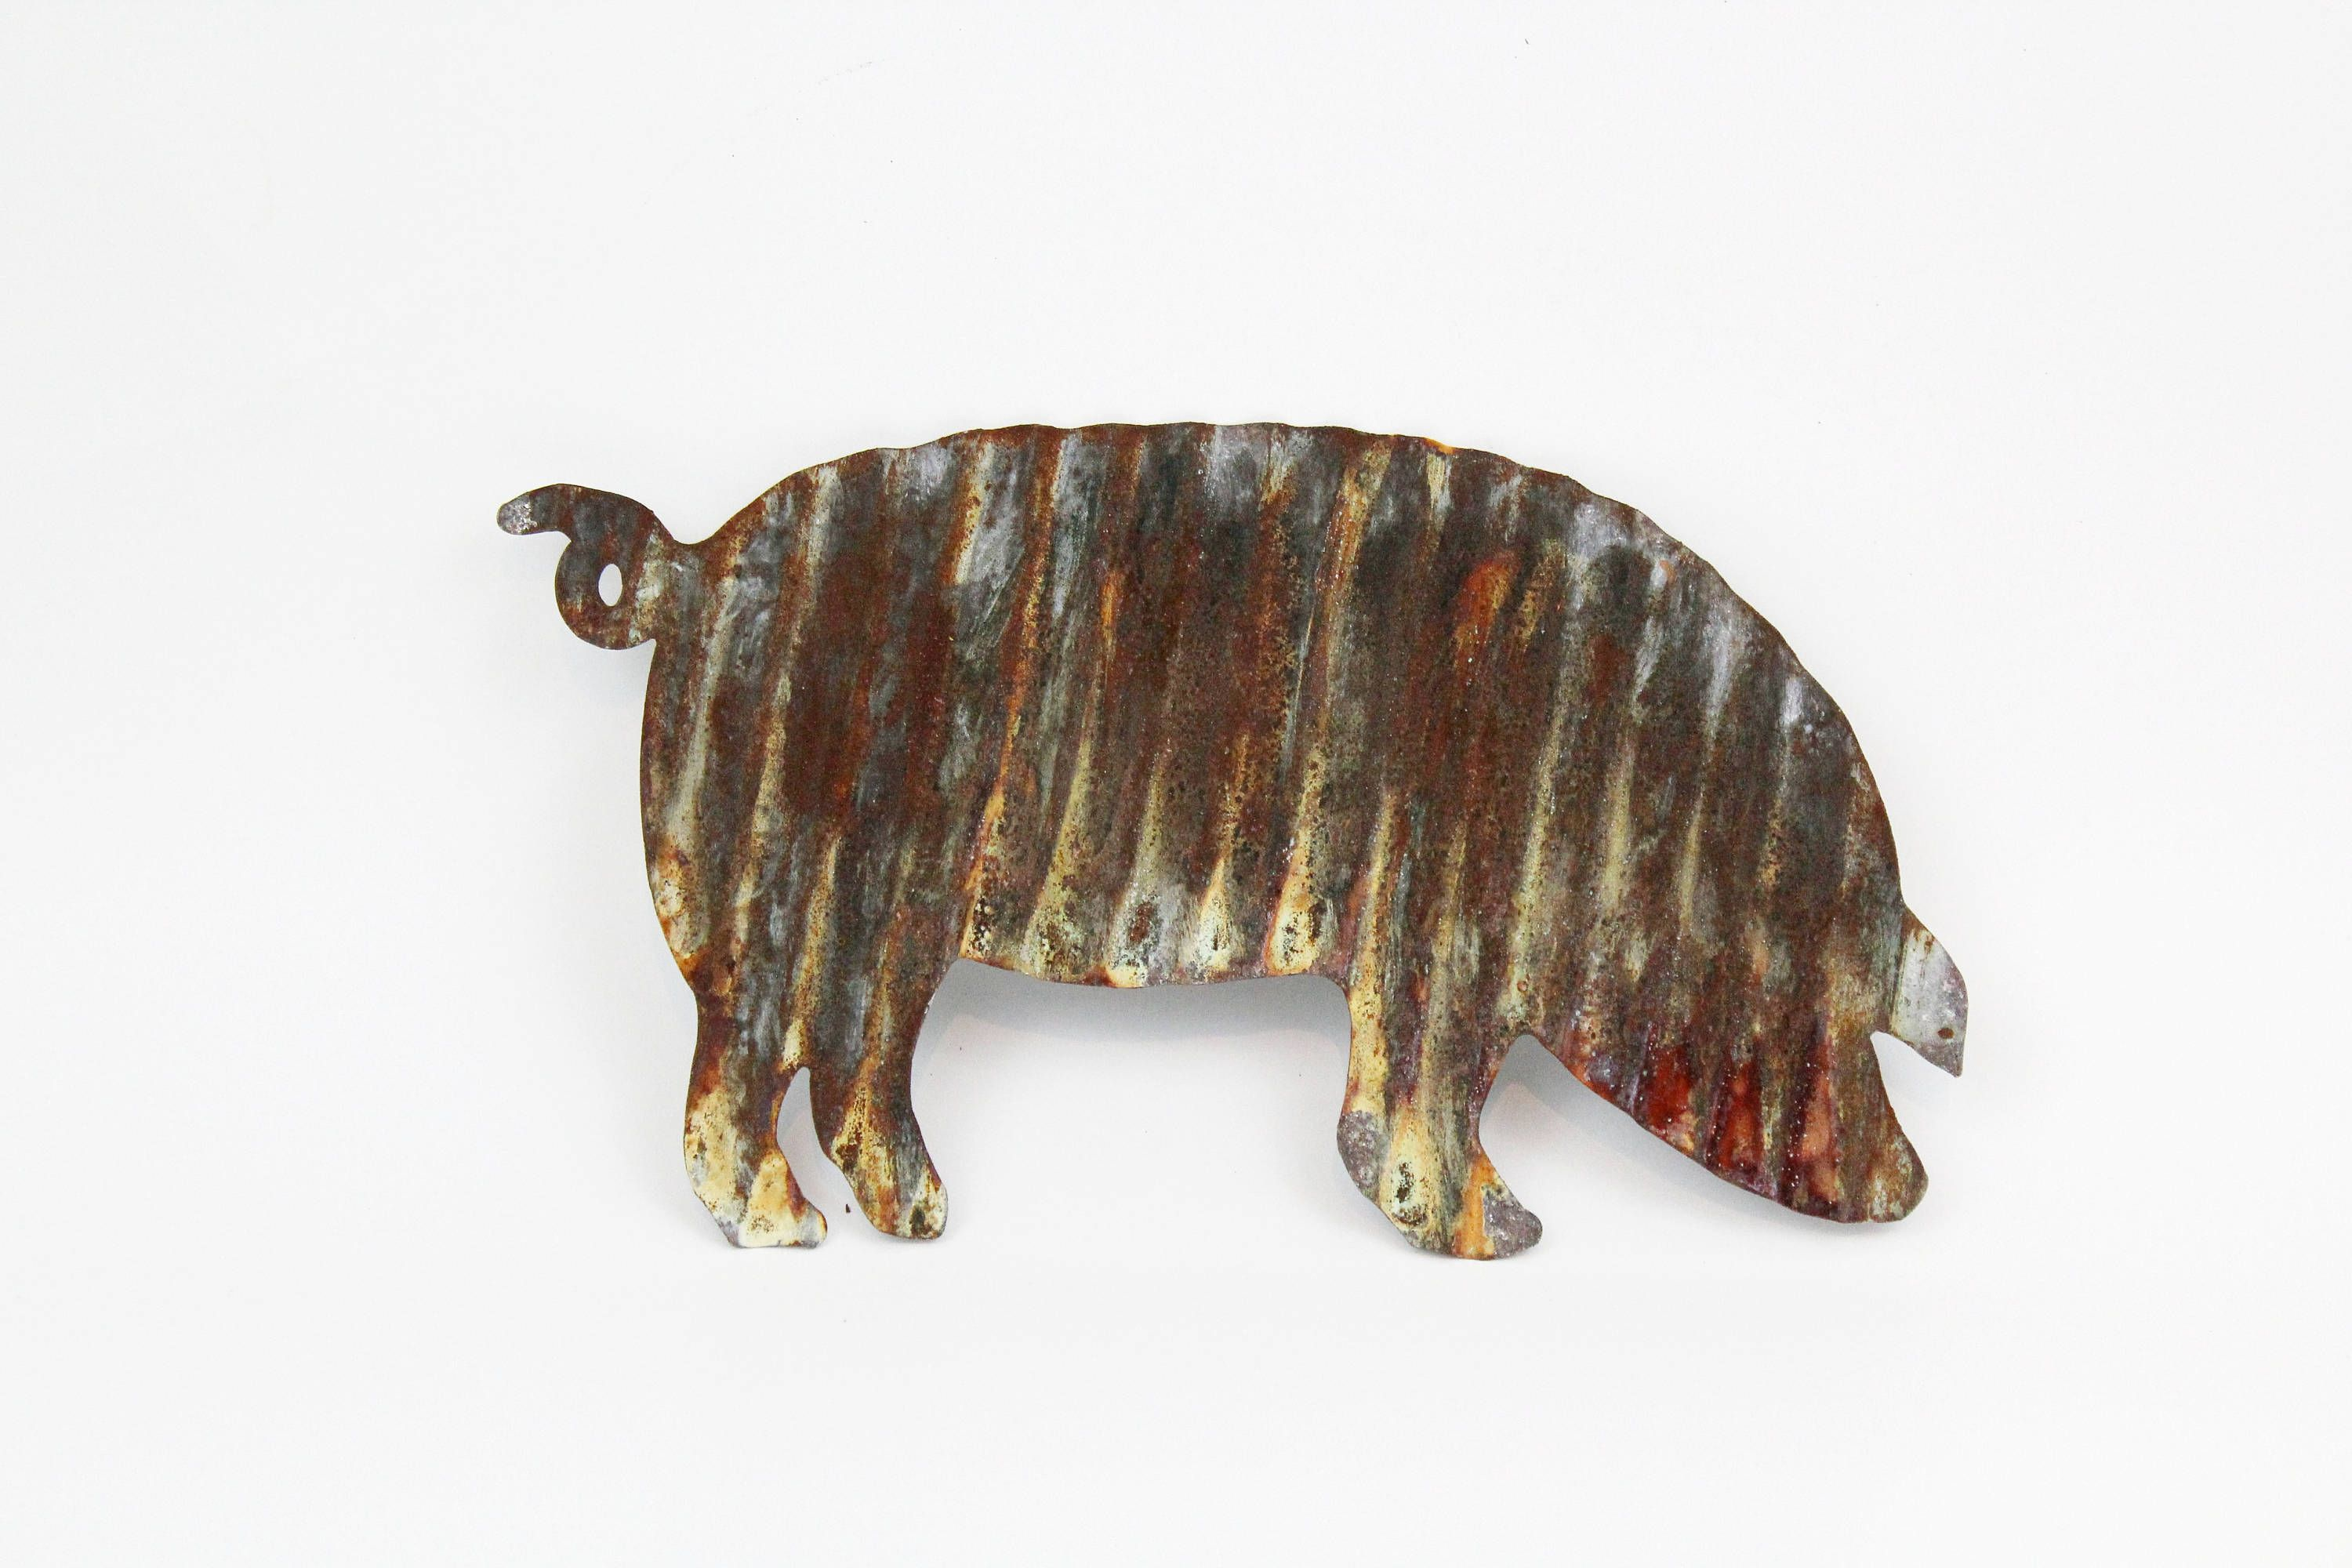 Rustic Decorgalvanized Metal Pig Rustic Kitchen Etsy In 2021 Kitchen Decor Etsy Farmhouse Wall Decor Rustic Kitchen Decor